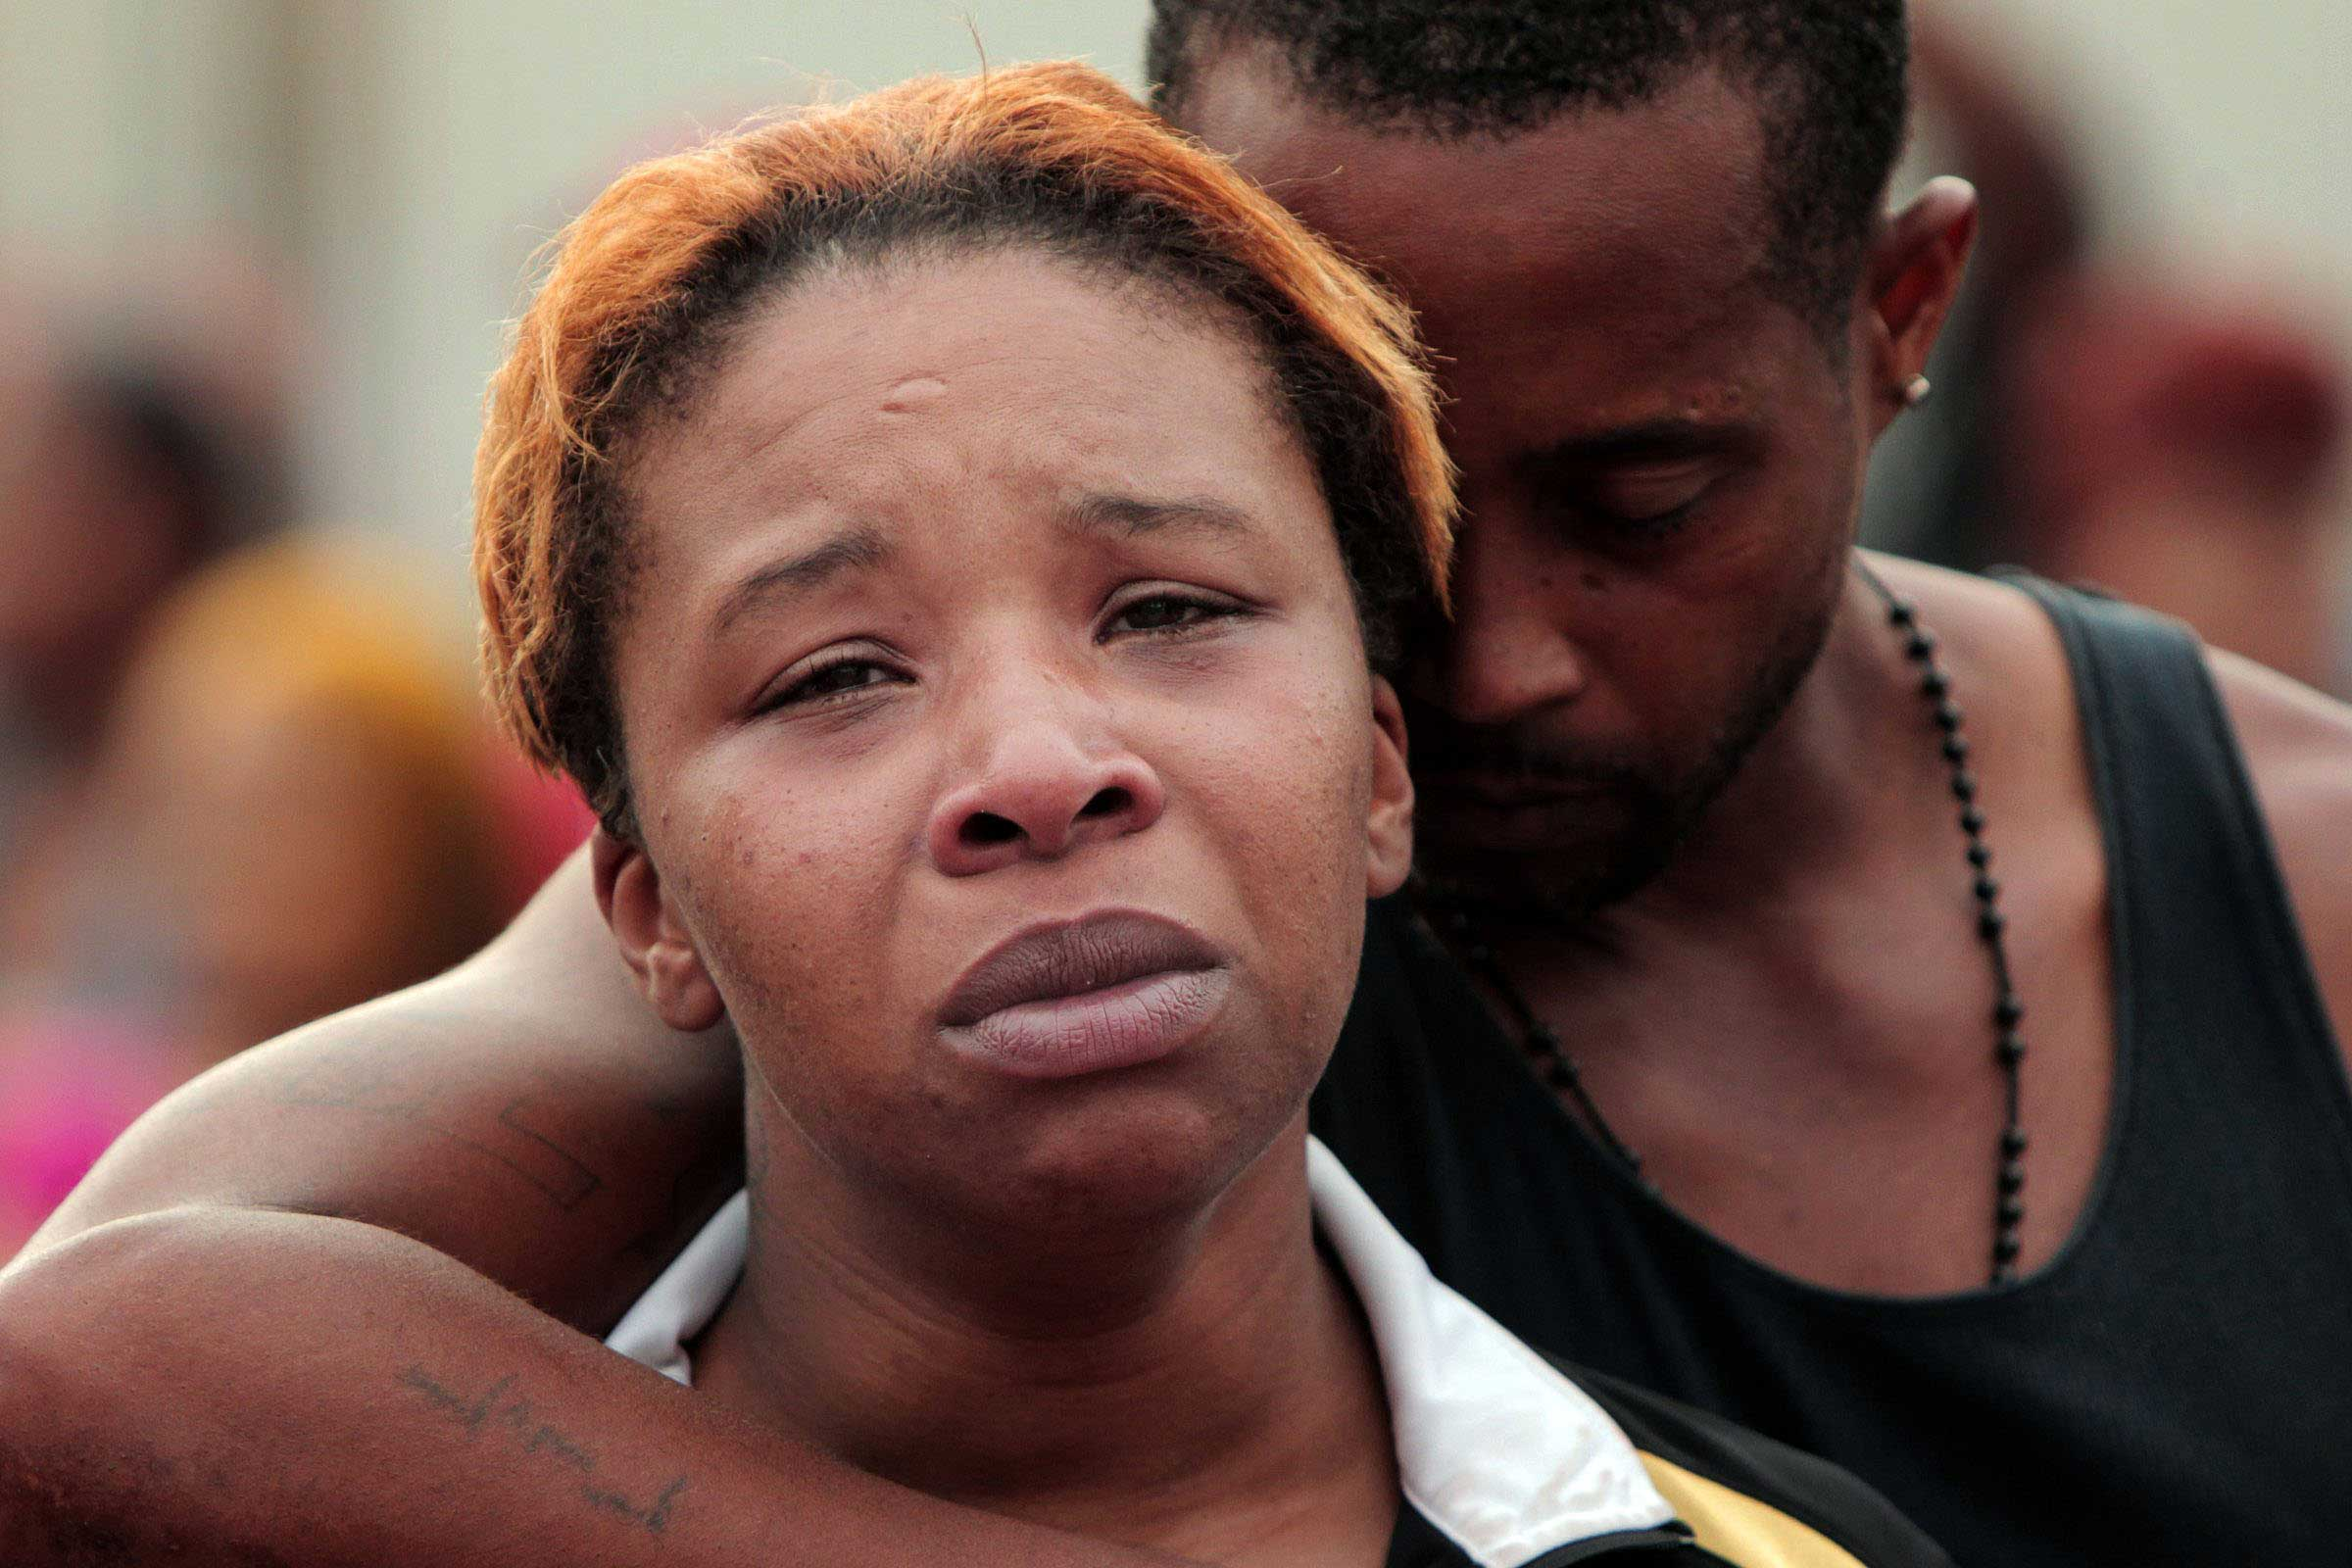 Aug. 9, 2014. Lesley McSpadden, left, is comforted by her husband, Louis Head, after her 18-year-old son, Michael Brown was shot and killed by police in the middle of the street in Ferguson, Mo., near St. Louis on Saturday. A spokesman with the St. Louis County Police Department, which is investigating the shooting at the request of the local department, confirmed a Ferguson police officer shot the man. The spokesman didn't give the reason for the shooting.